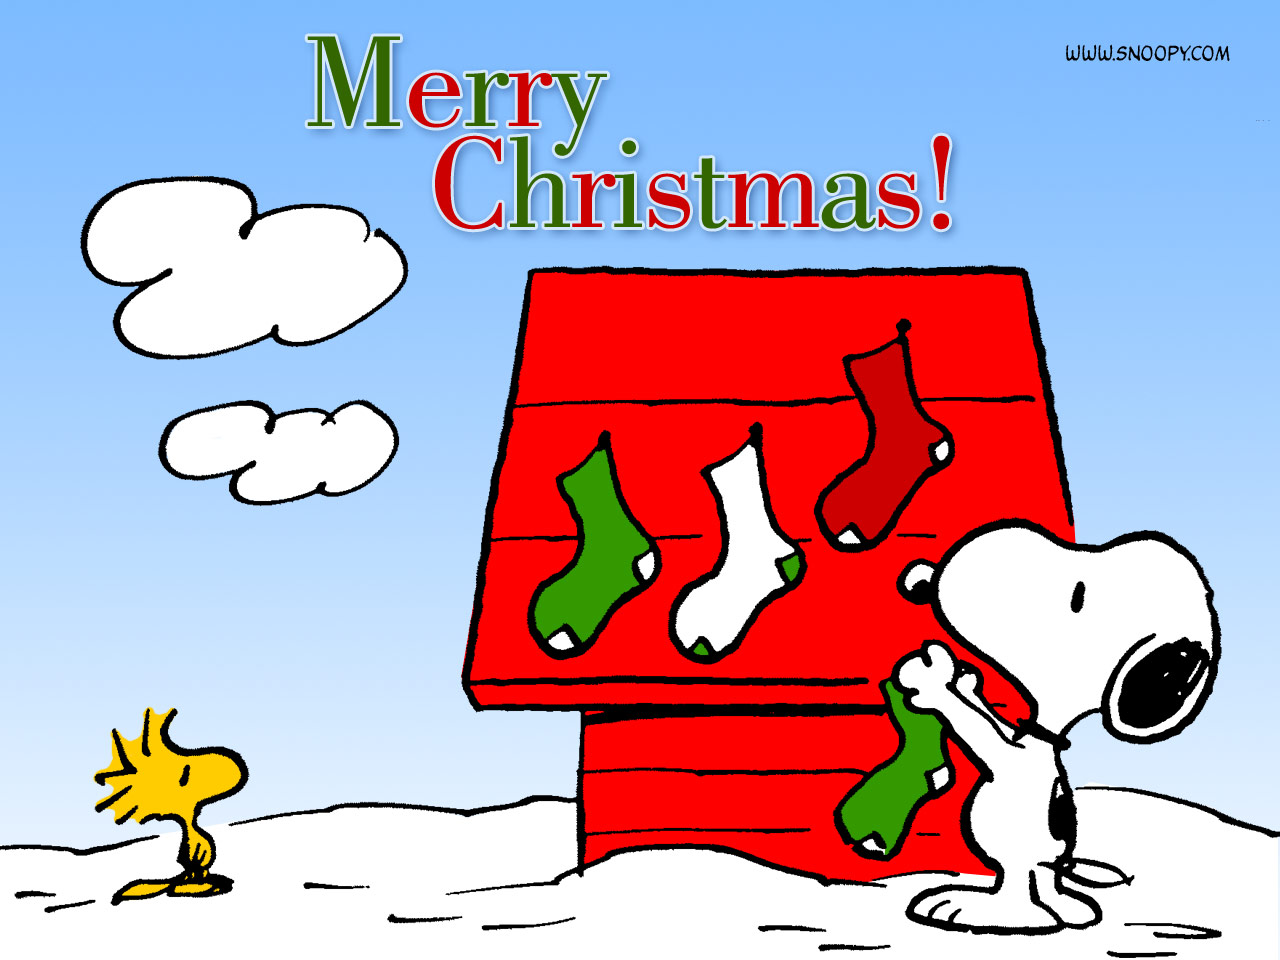 peanuts images snoopy christmas hd wallpaper and background photos - Peanuts Christmas